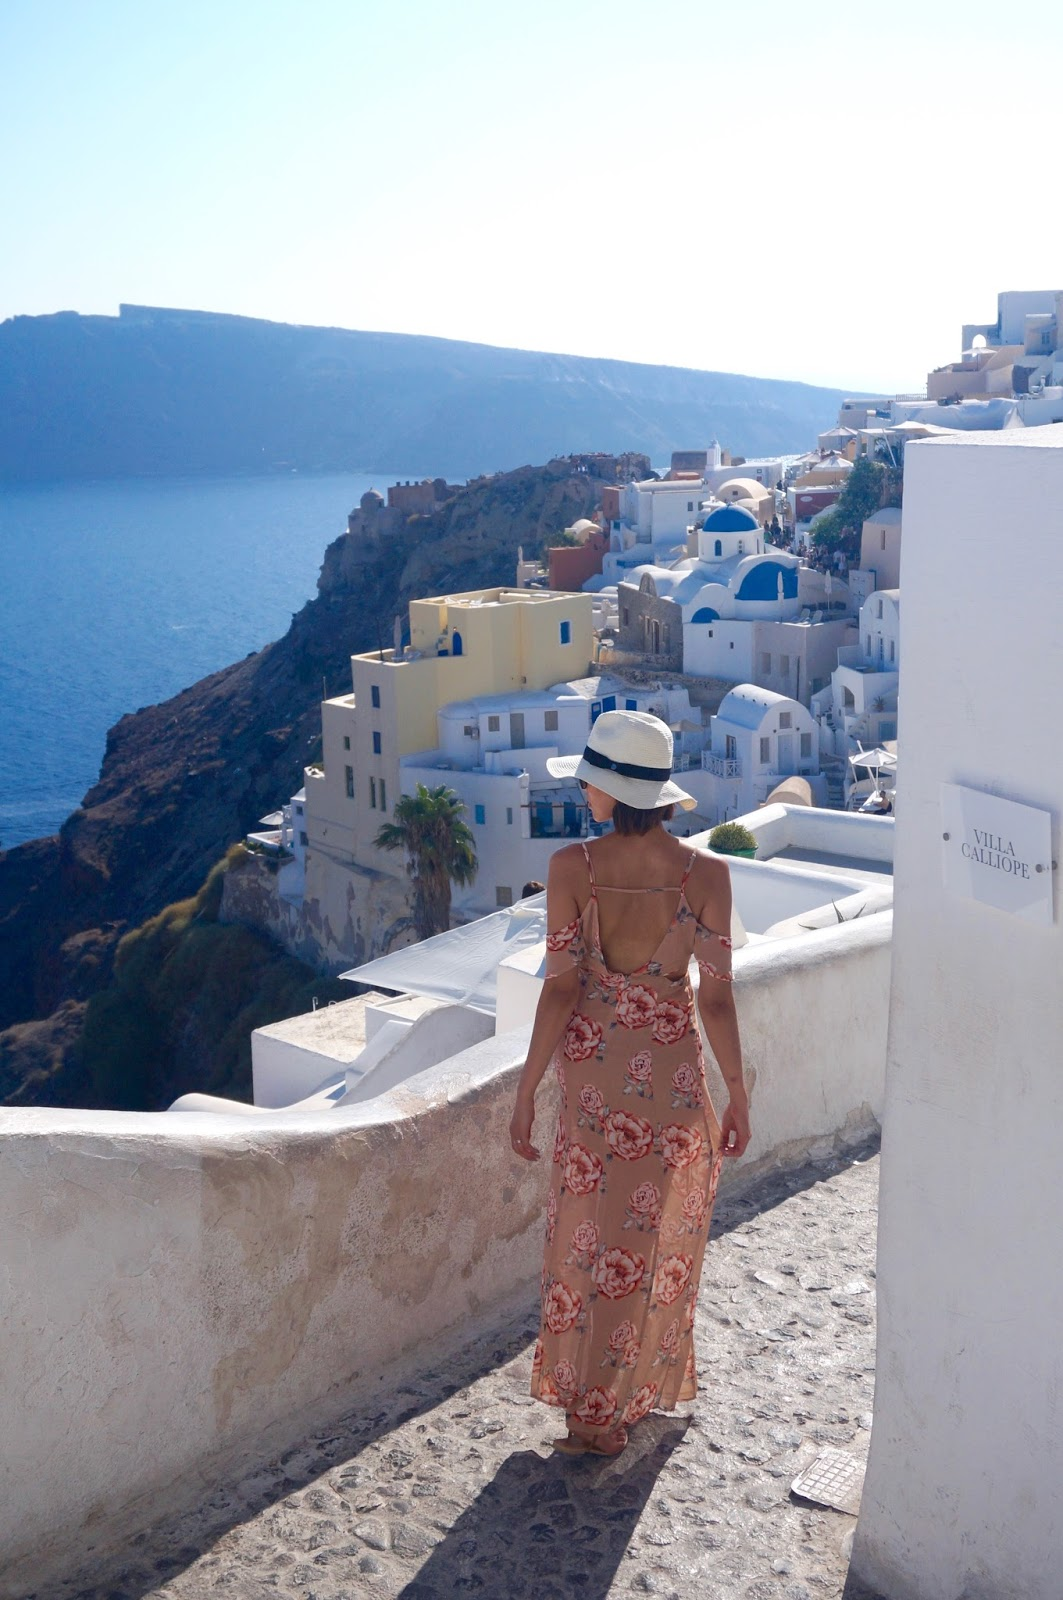 Santorini Travel Guide, santorini photo diary, things to see and do in santorini greece, greek island